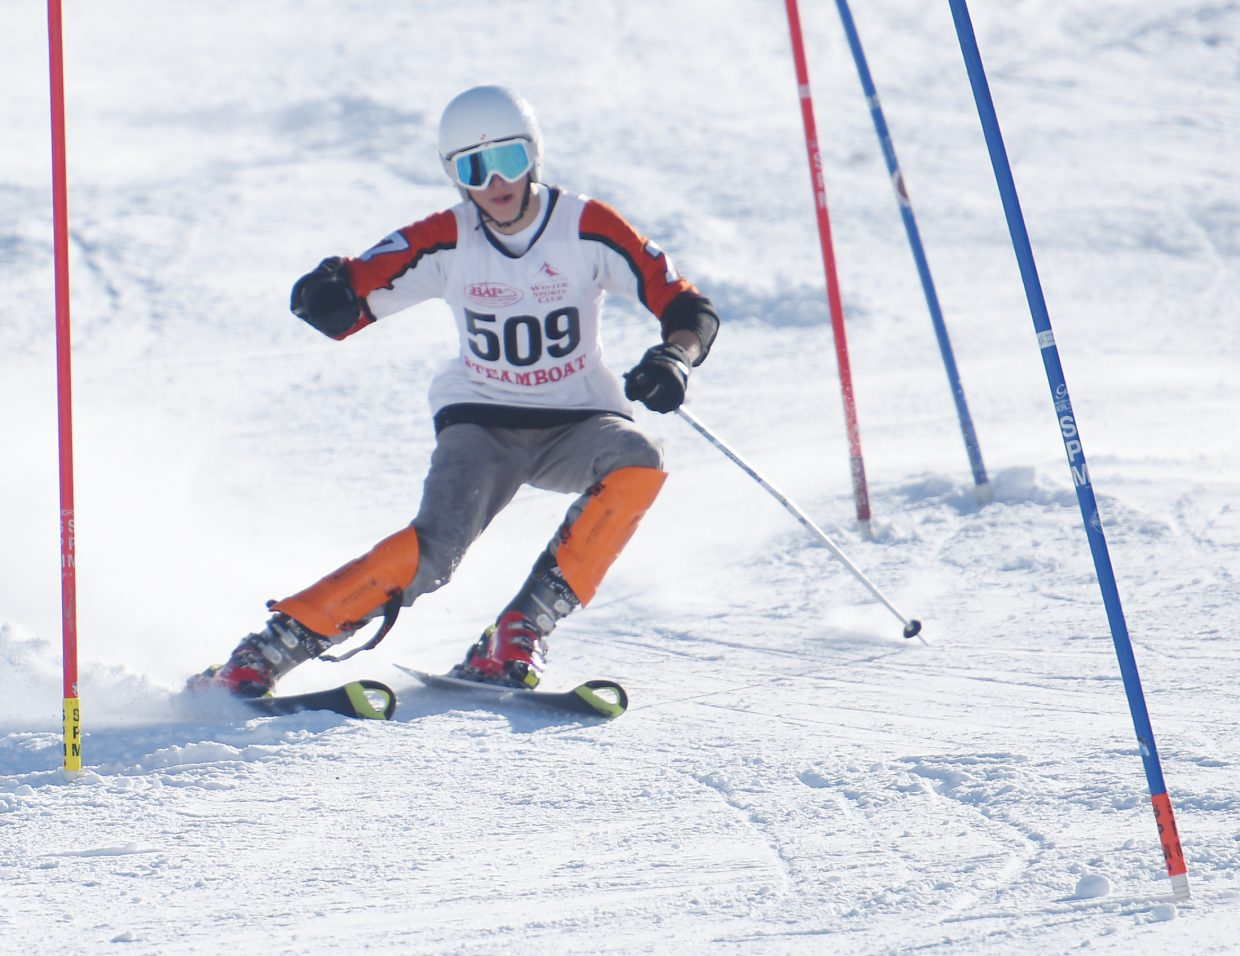 Steamboat Springs skier Connor Channing navigates his way through gates during a slalom race at Howelsen Hill. Channing was racing with one pole in the event after he broke his hand in a recent skiing accident.